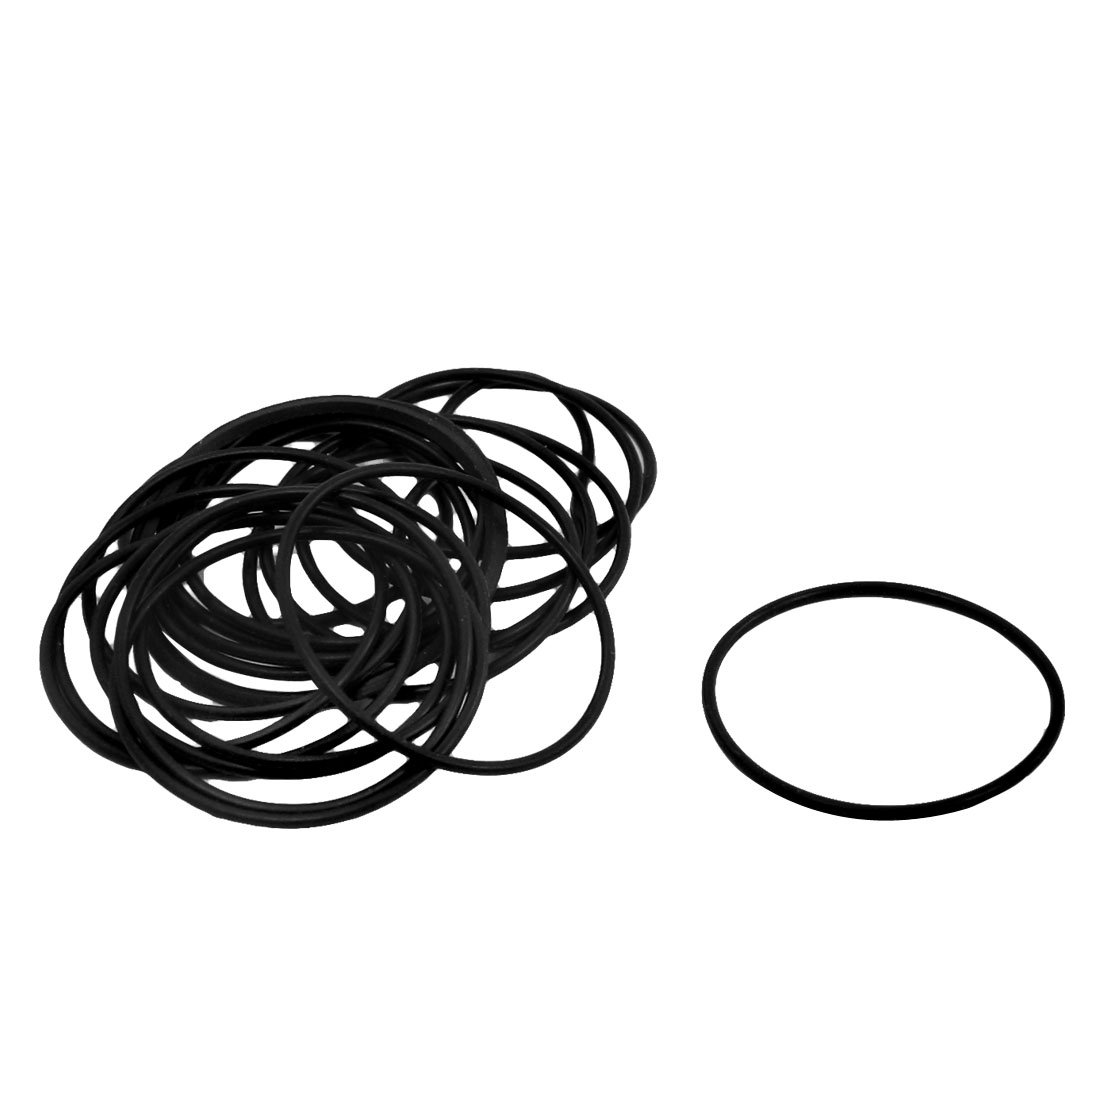 10Pcs 70mm OD 3.1mm Thickness Industrial PU O Ring Oil Seal Gaskets